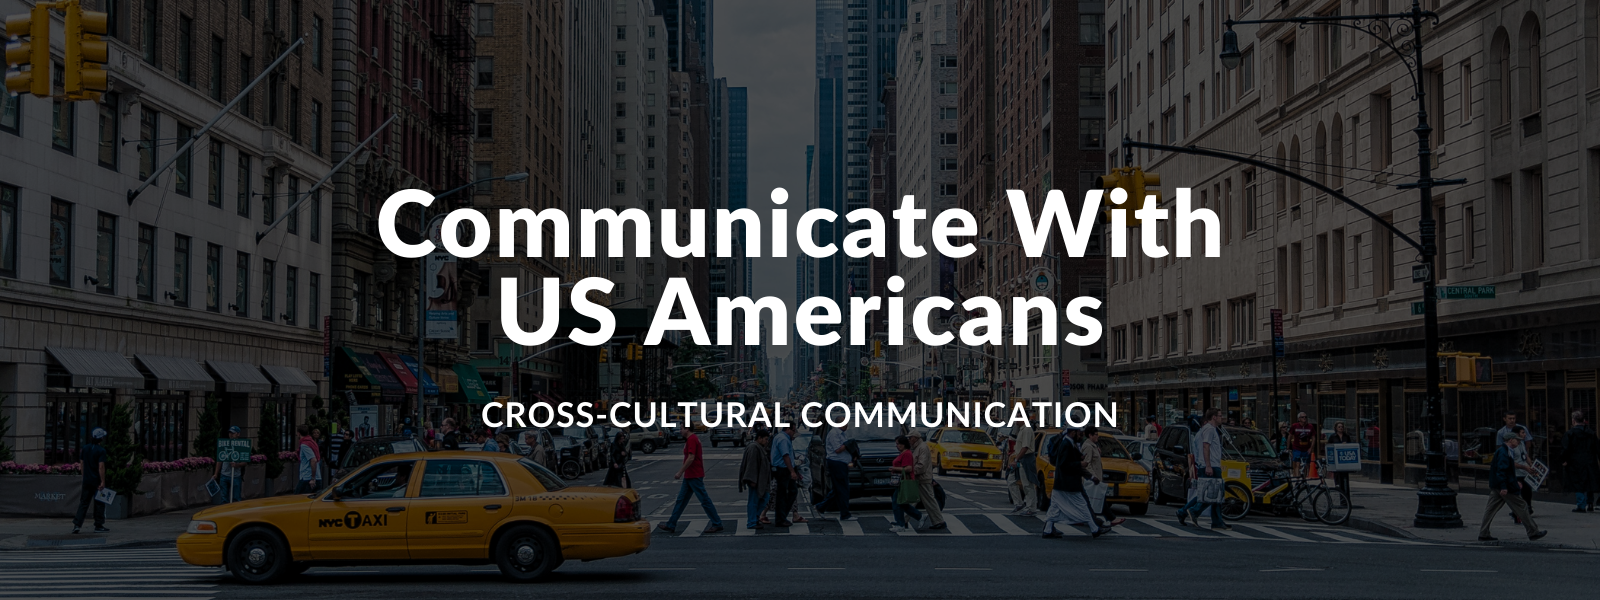 7 Tips On How To Communicate Better With US Americans [Podcast]